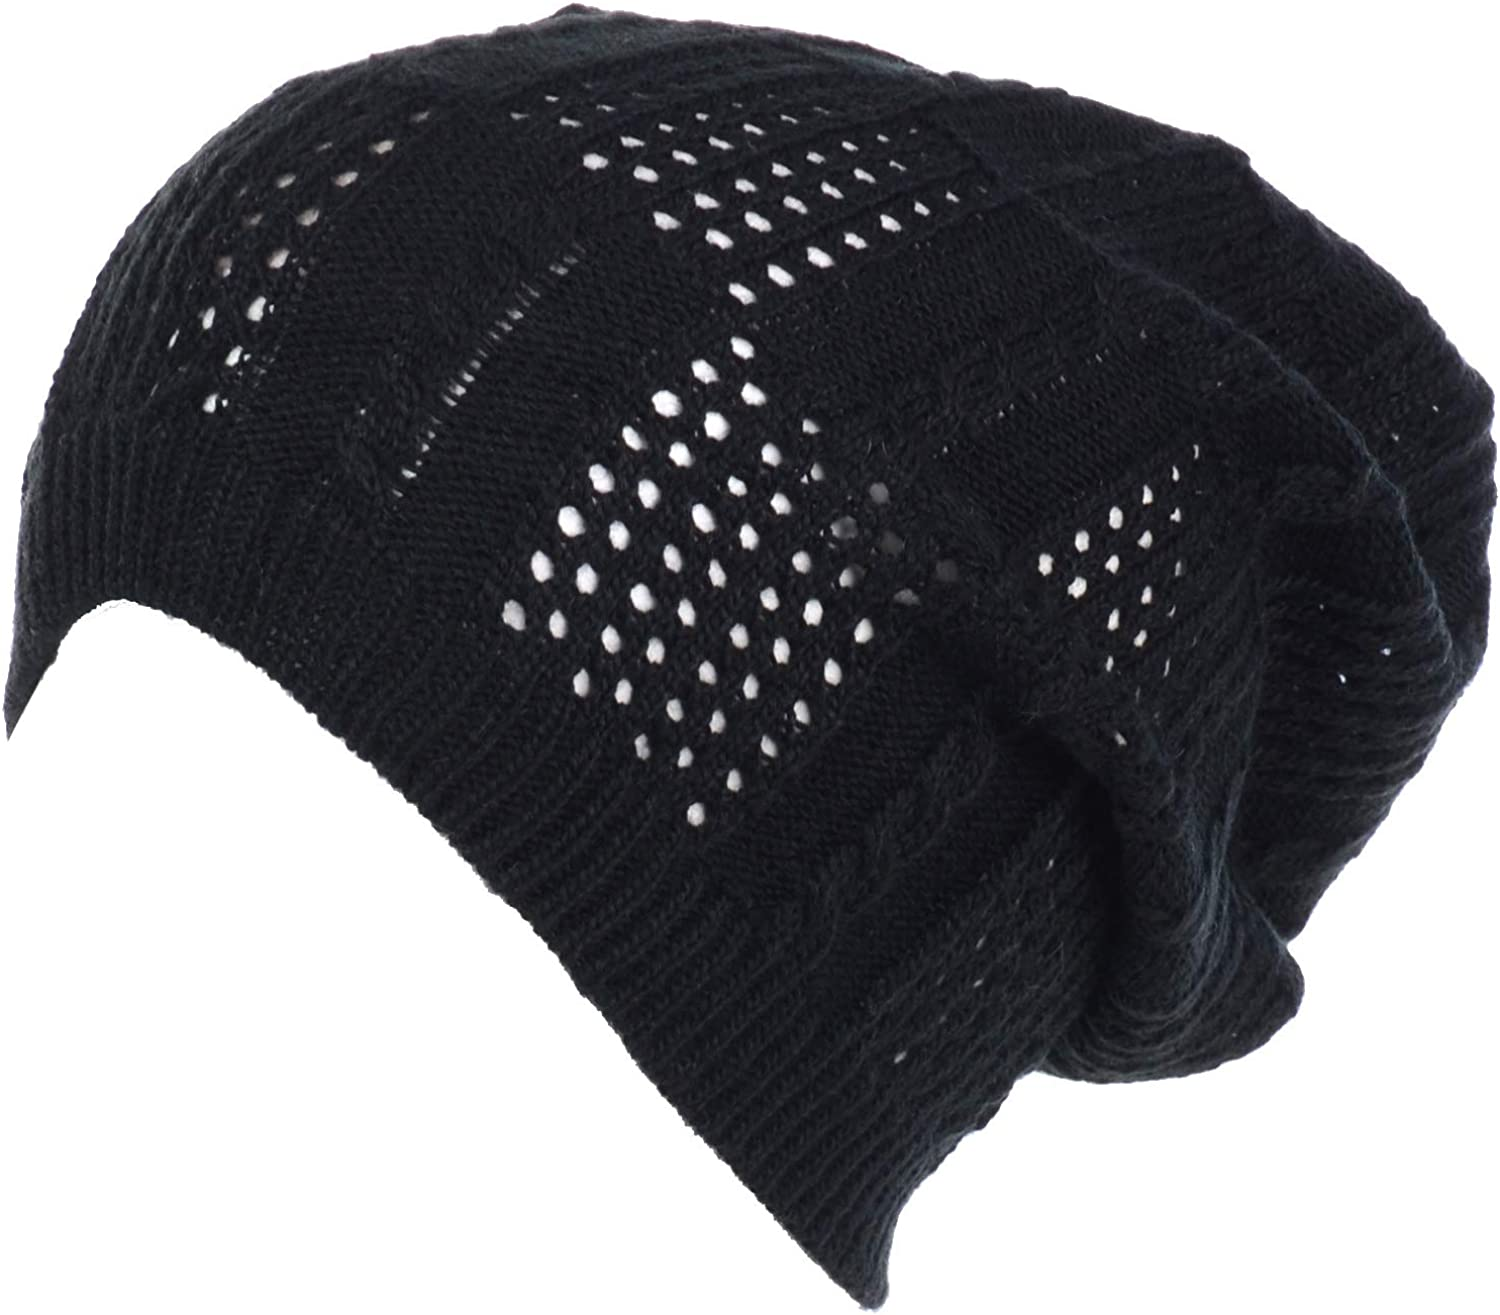 an Crochet Knit Beanie for Women Men Teens Colorful Slouchy Fashion Accessory